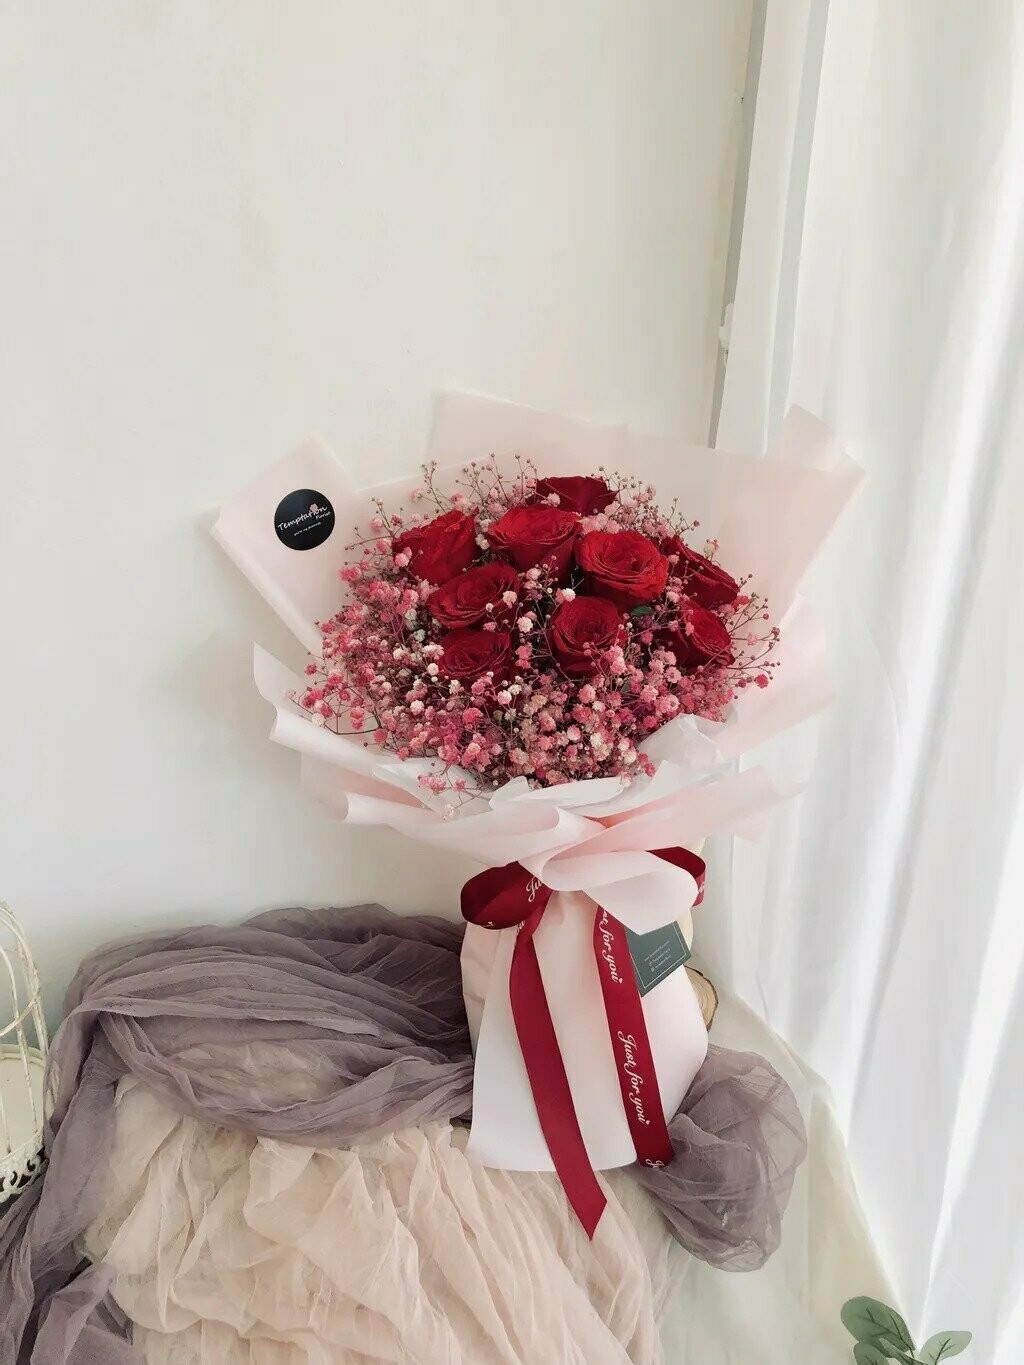 Sonia (By: Temptation Florist from Seremban)